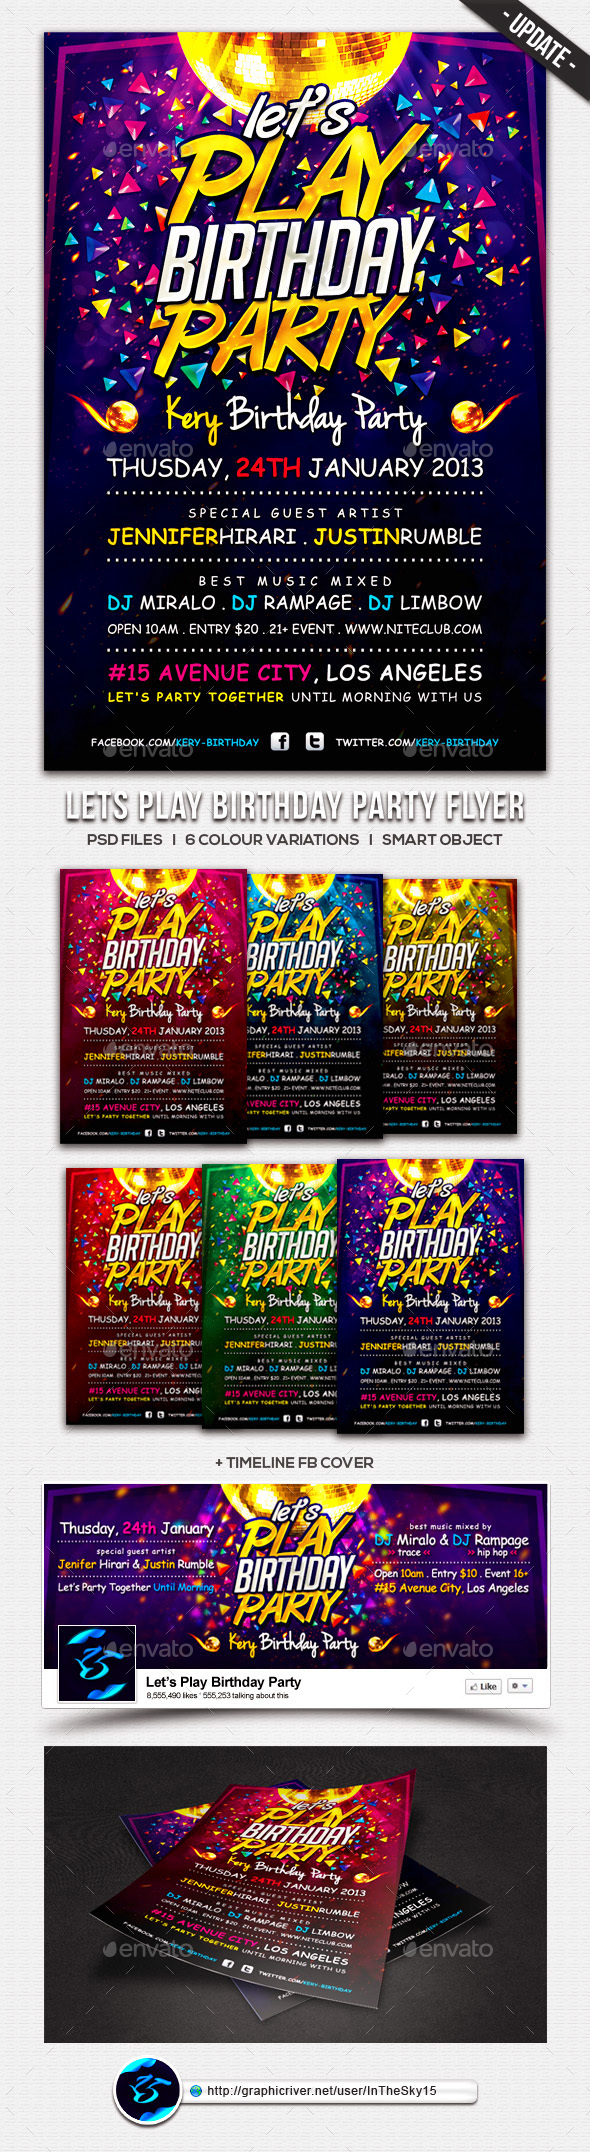 Lets Play Birthday Party Flyer Template - Clubs & Parties Events